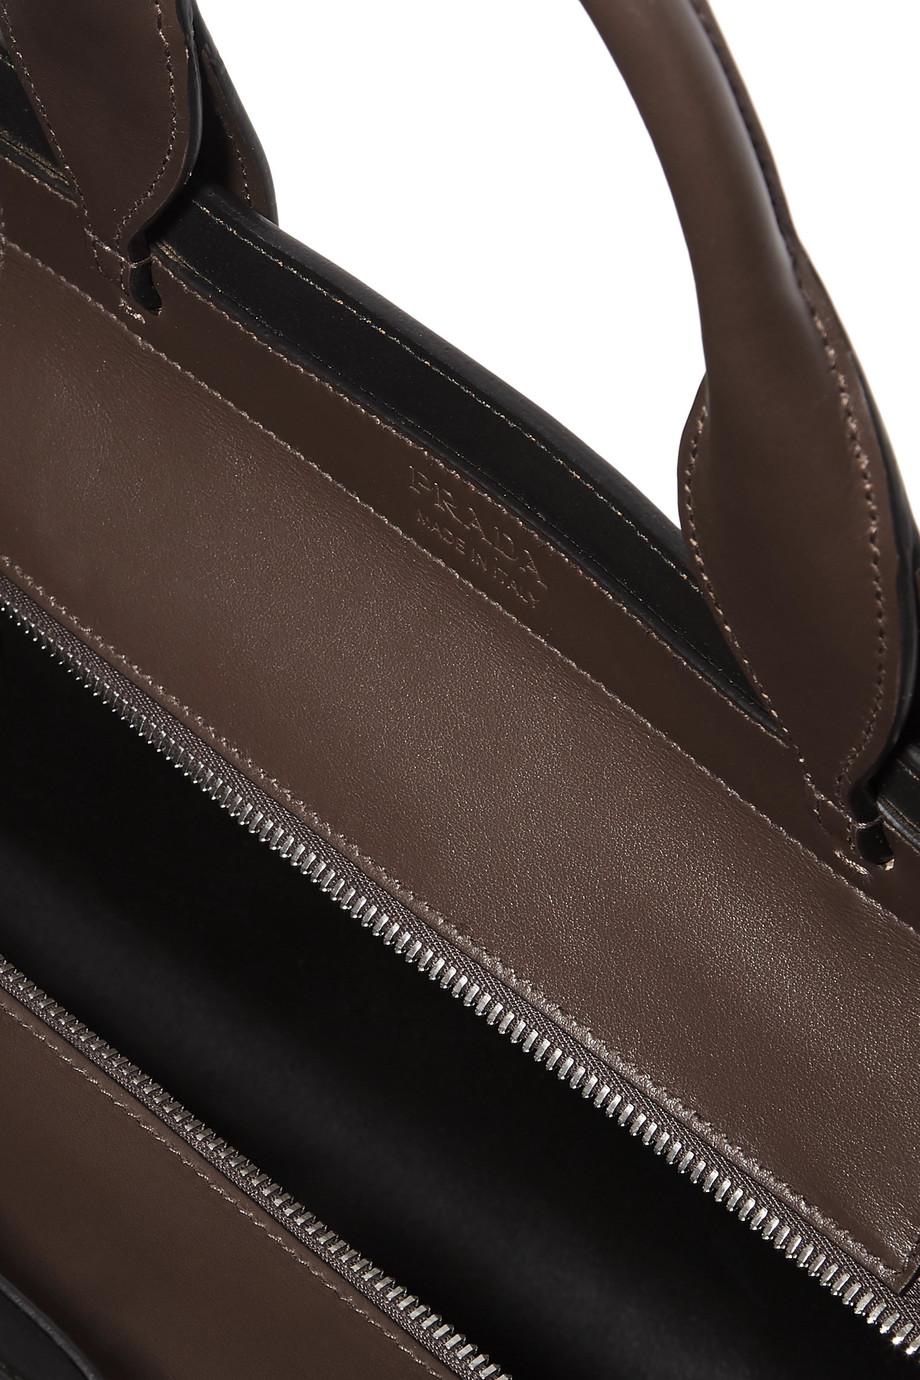 c85b9cd922 Prada Ouverture leather-trimmed suede tote